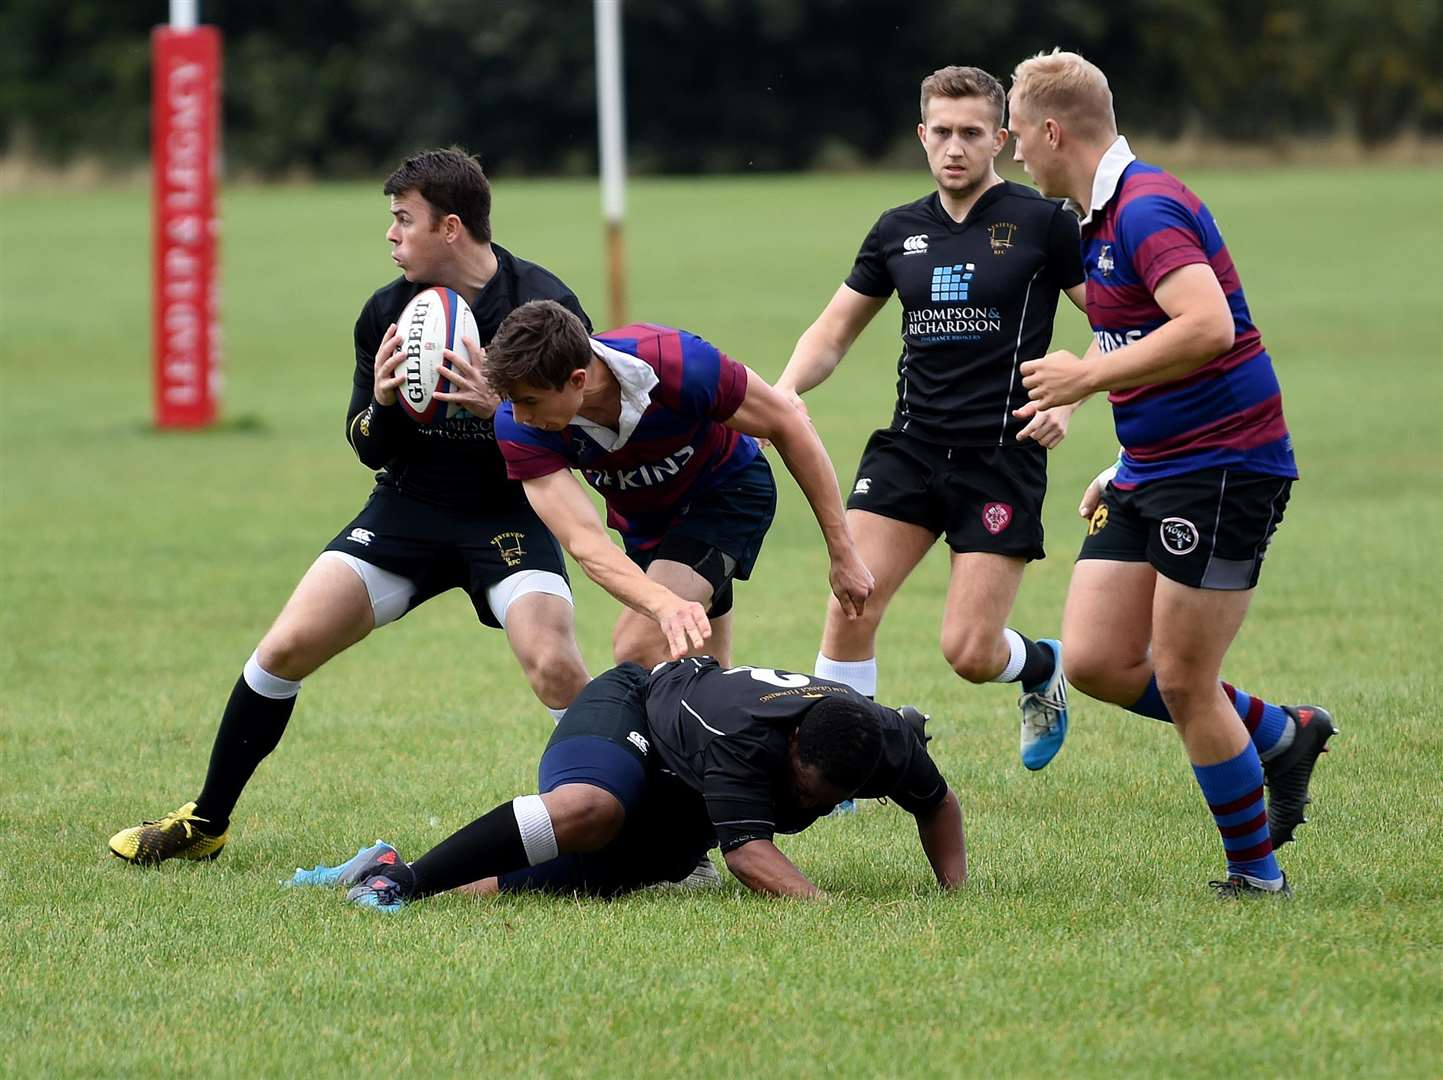 Action from Kesteven's win over Rolls Royce at Woodnook on Saturday. Photo: Toby Roberts (4233484)